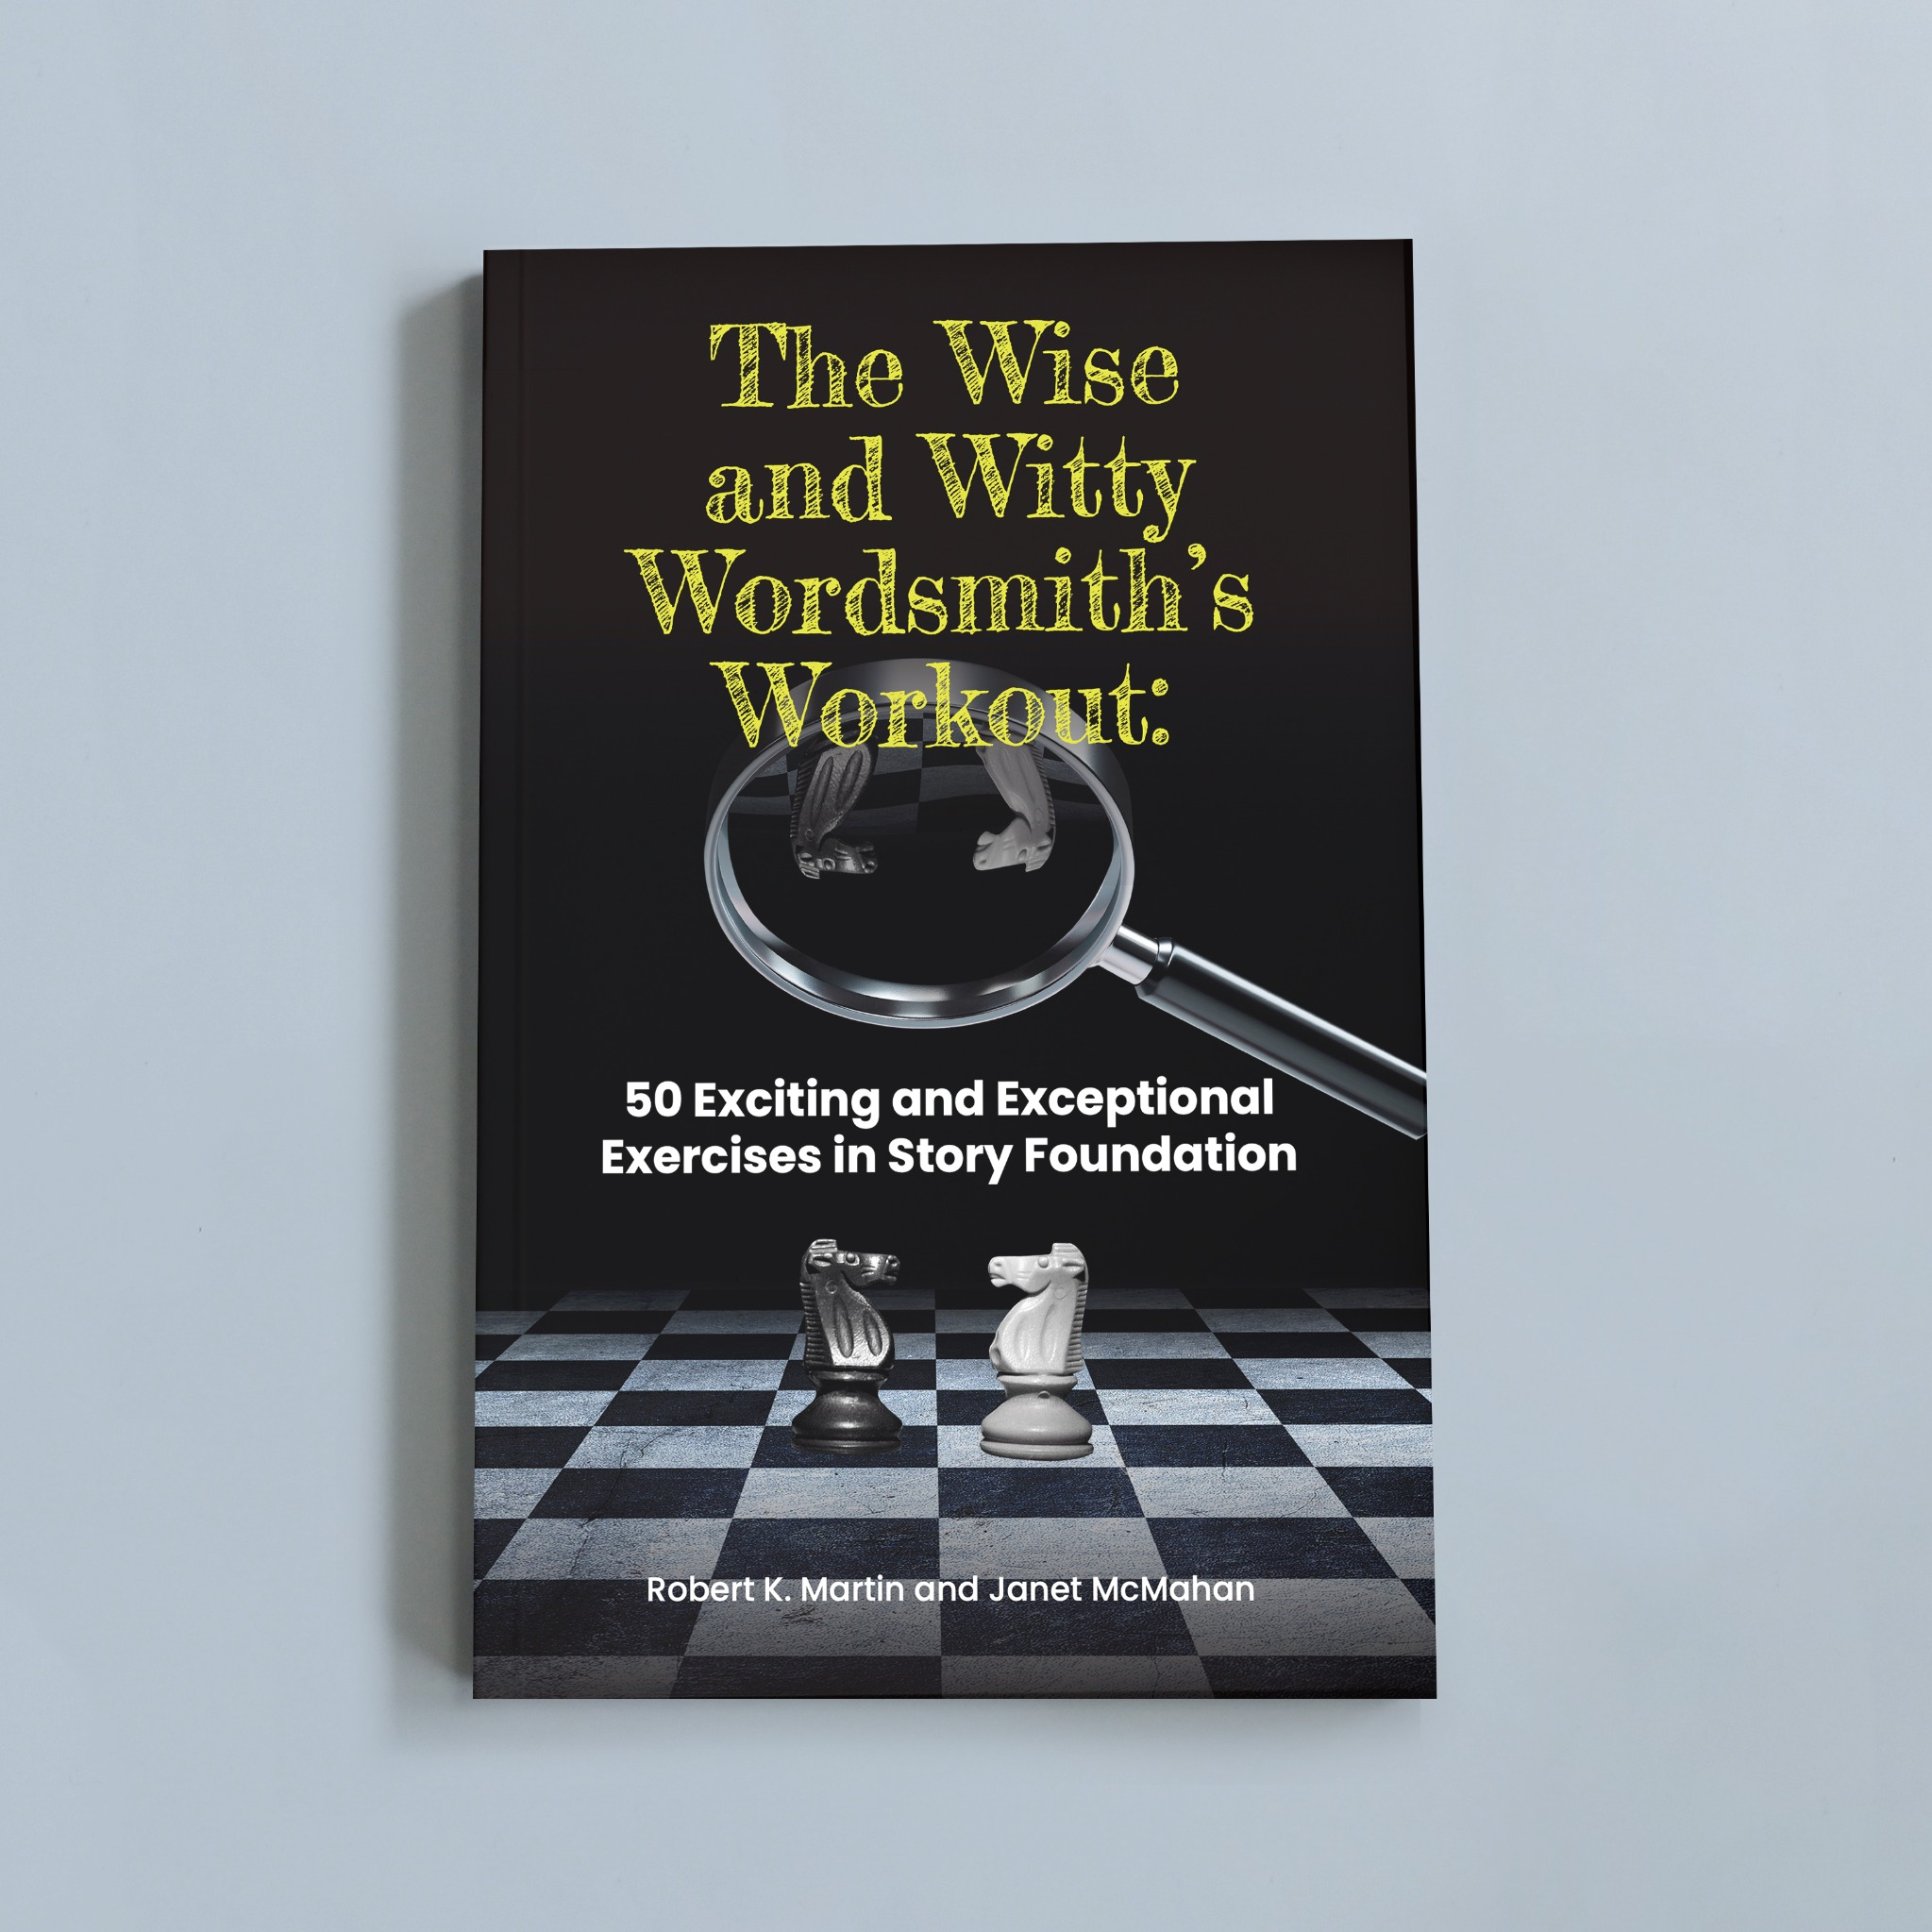 The Wise and Witty Wordsmith's Workout: 50 Exciting and Exceptional Exercises in Story Foundation E